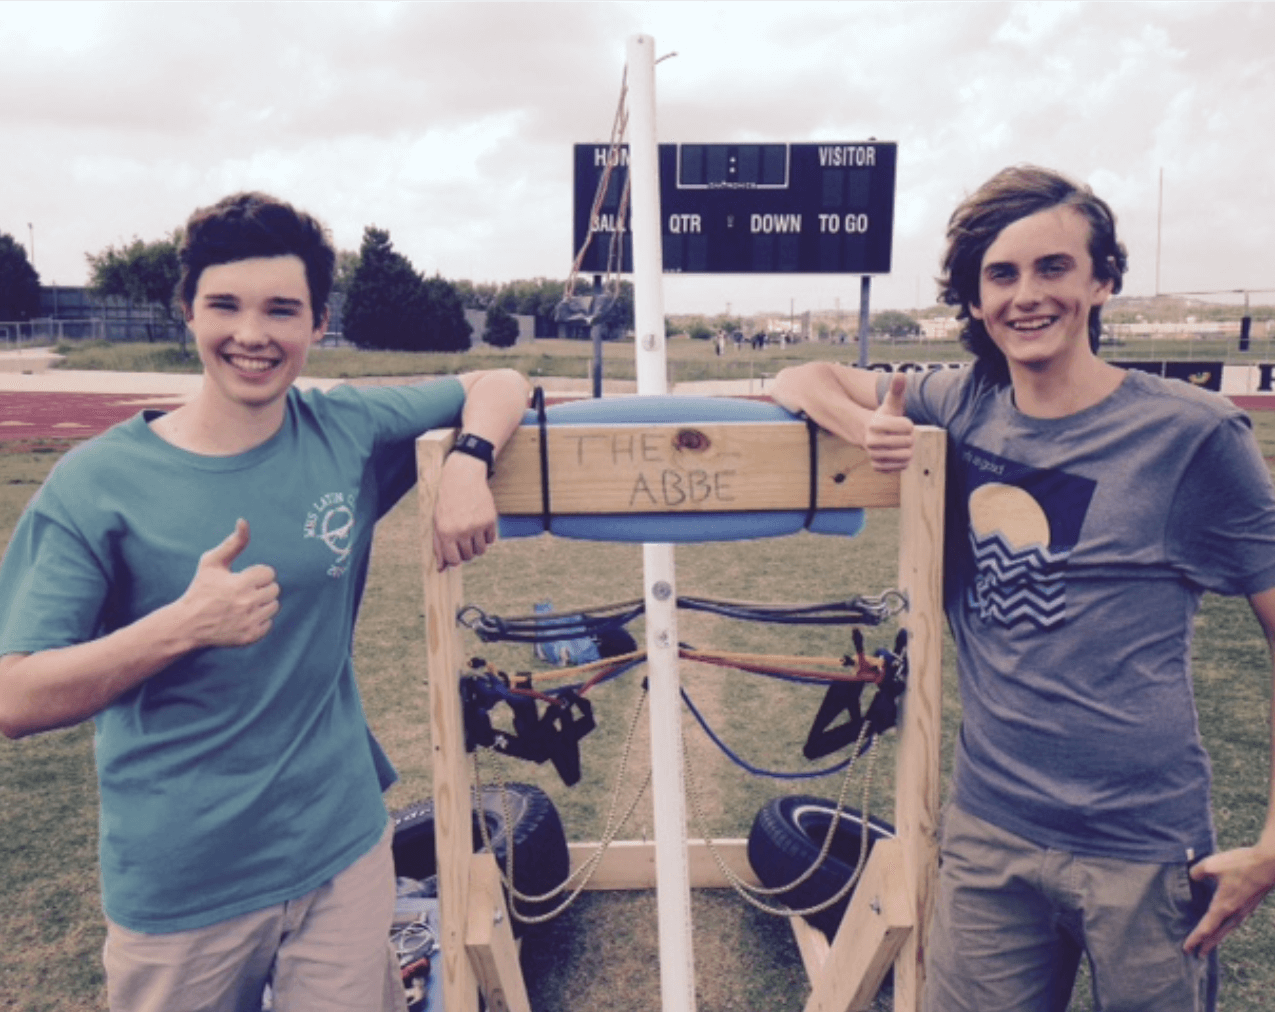 Two club members proudly pose in front of a catapult named after Magister Abbe.